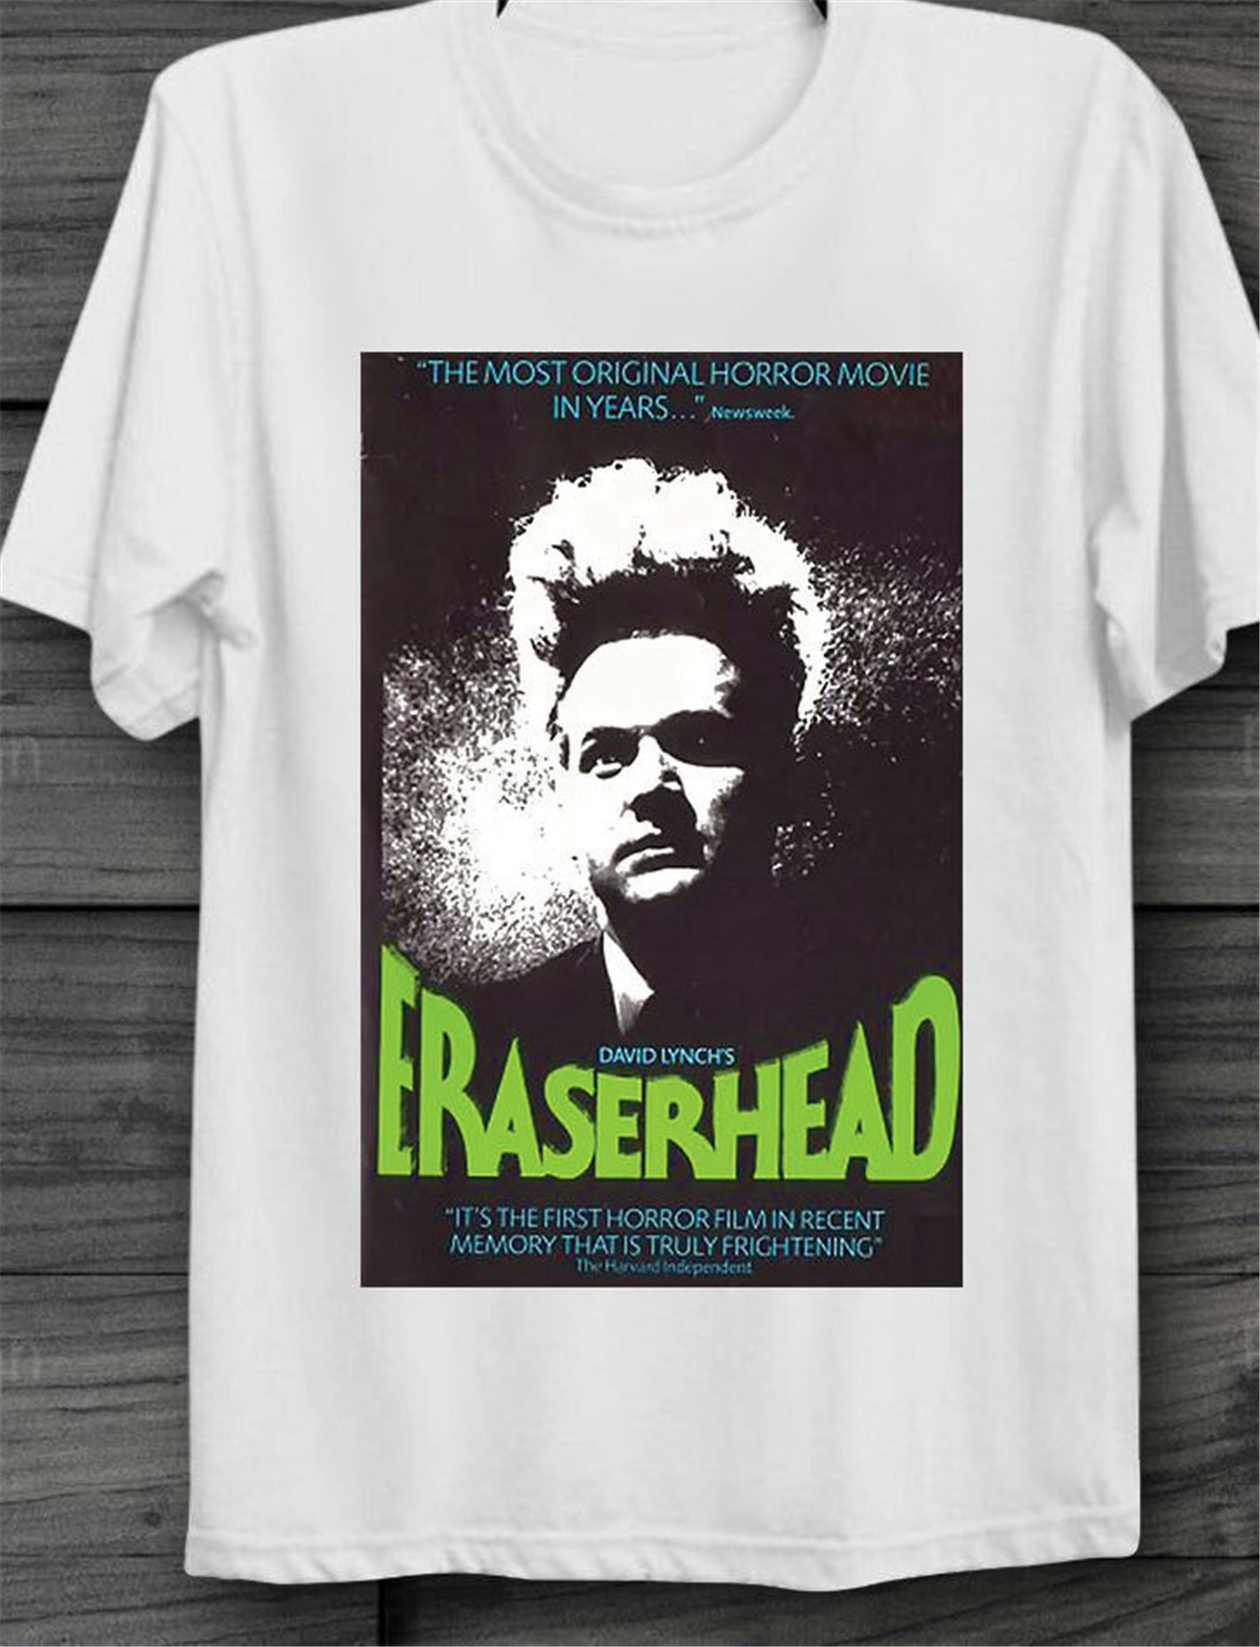 Eraserhead David Lynch Cult Horror Movie 70s Retro Vintage Unisex Tops Tee T Shirt B199 T-Shirt Custom Graphic image